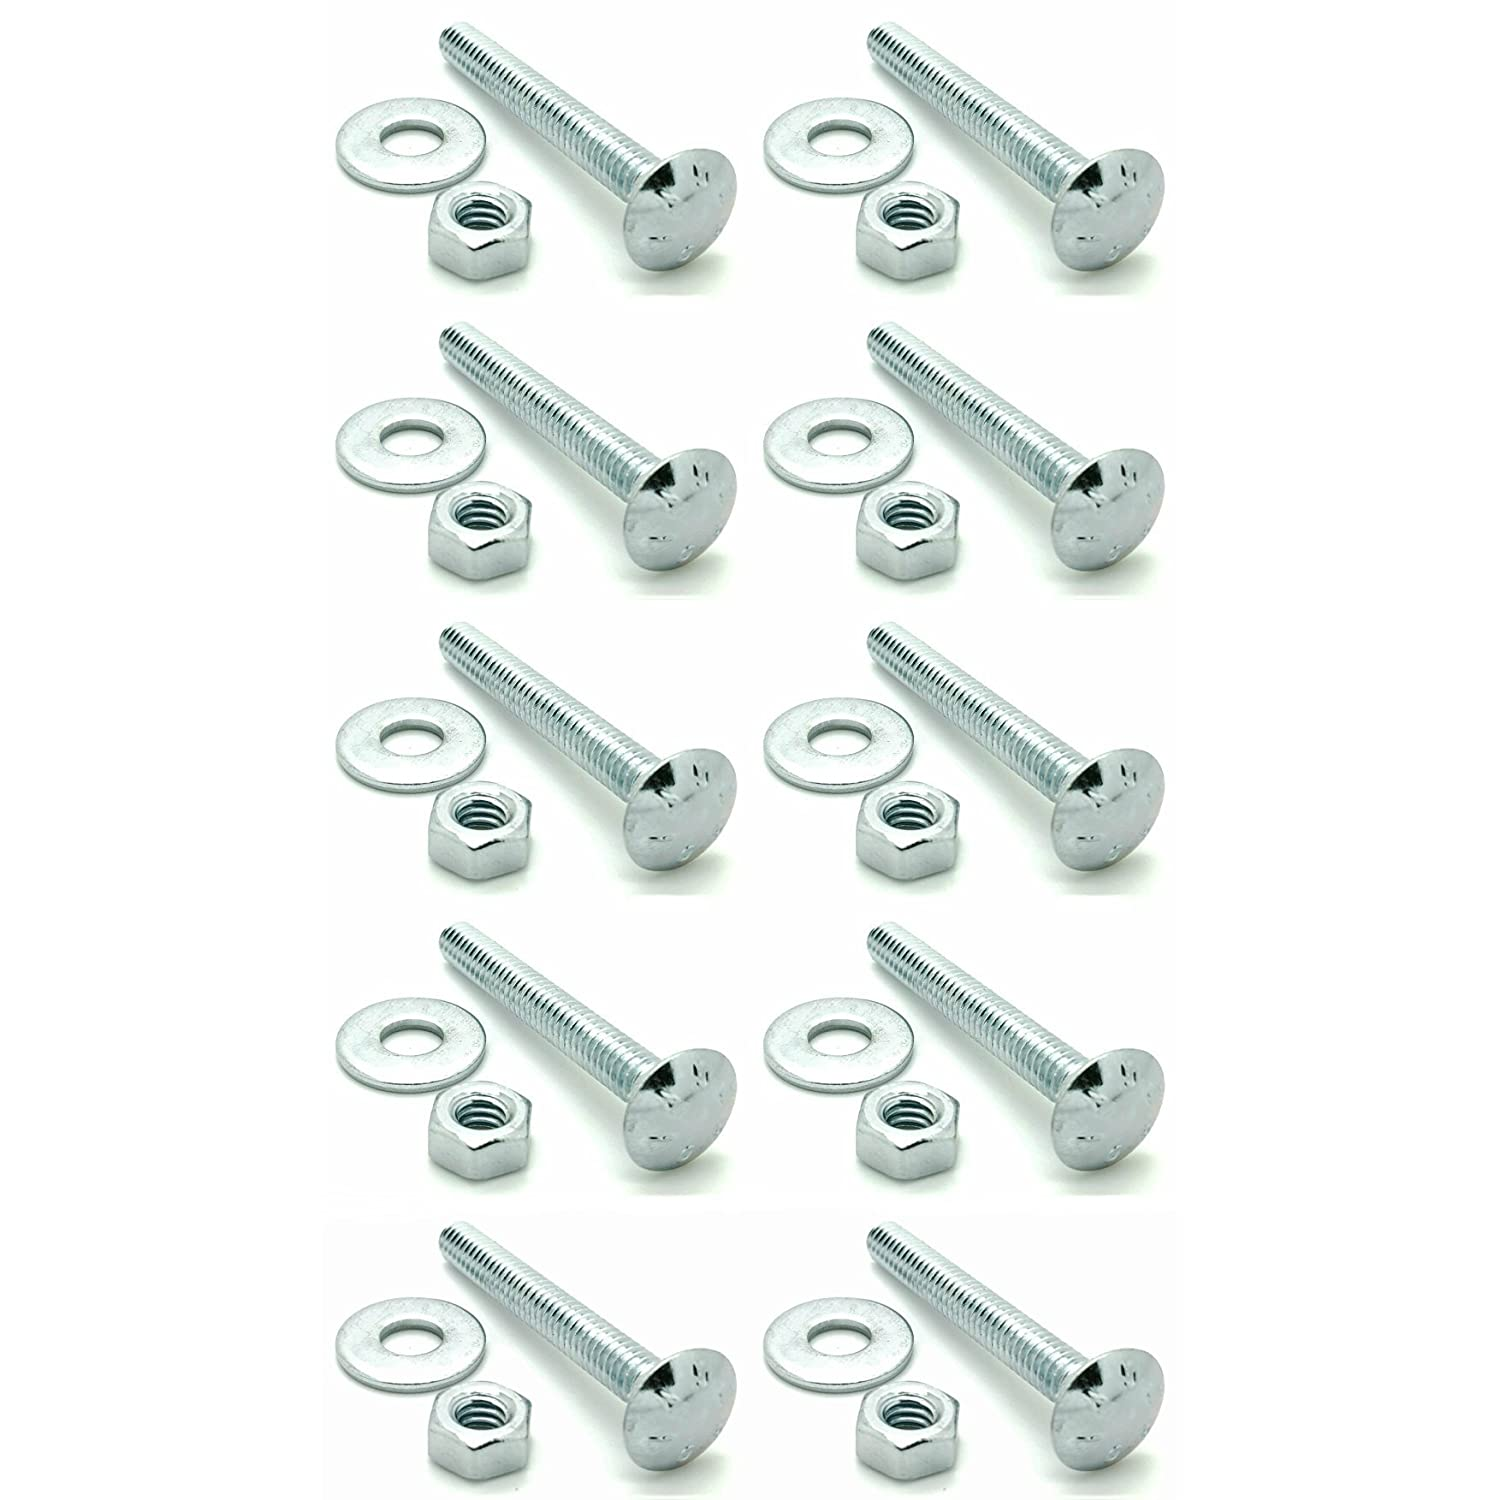 10 3//8-16 x 2 Long Carriage Bolts Set w//Nuts /& Washers SNG327 Ten SNUG Fasteners